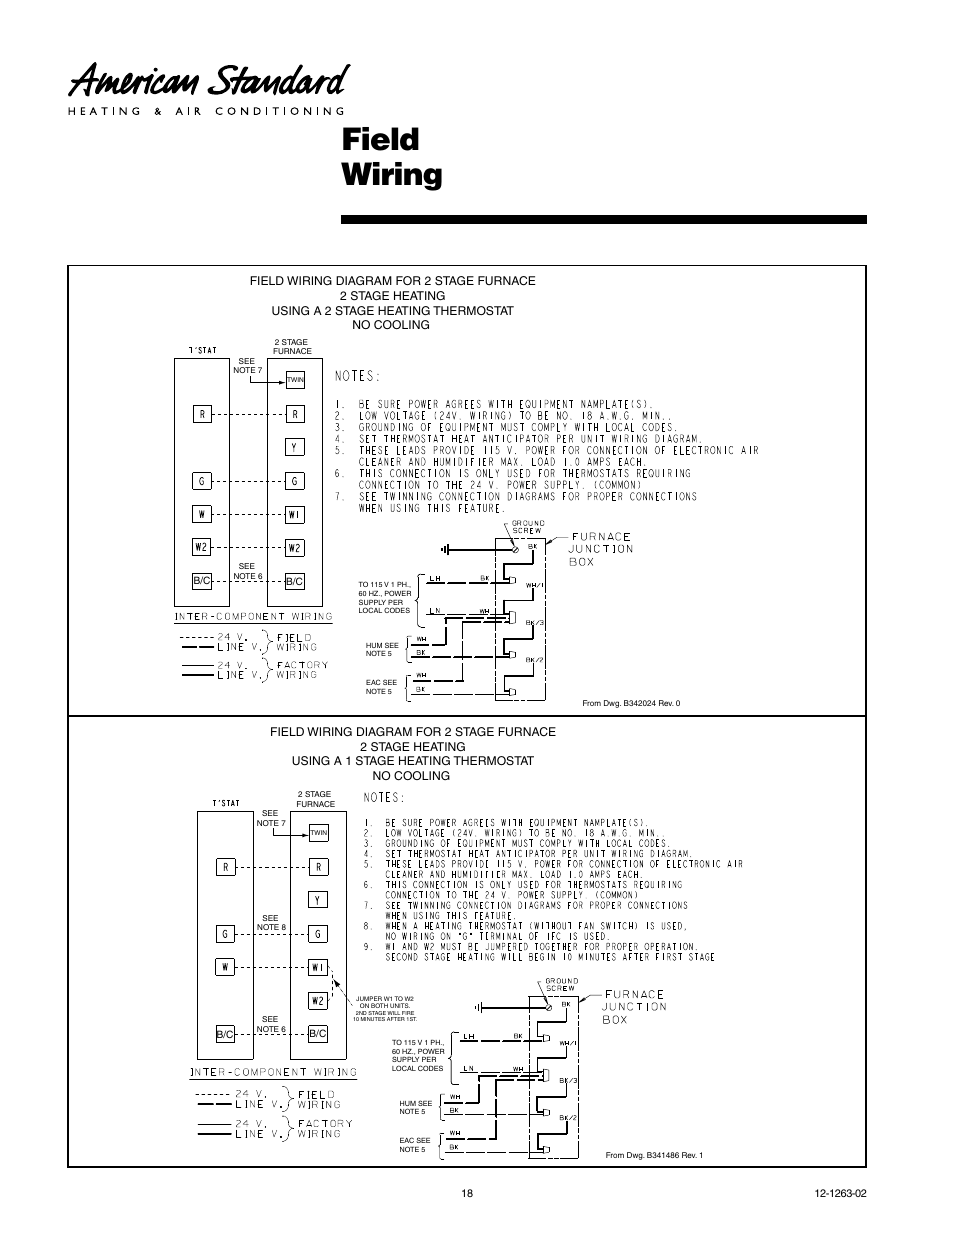 american standard freedom 80 page18 field wiring american standard freedom 80 user manual page 18 24 2-stage furnace thermostat wiring diagram at creativeand.co